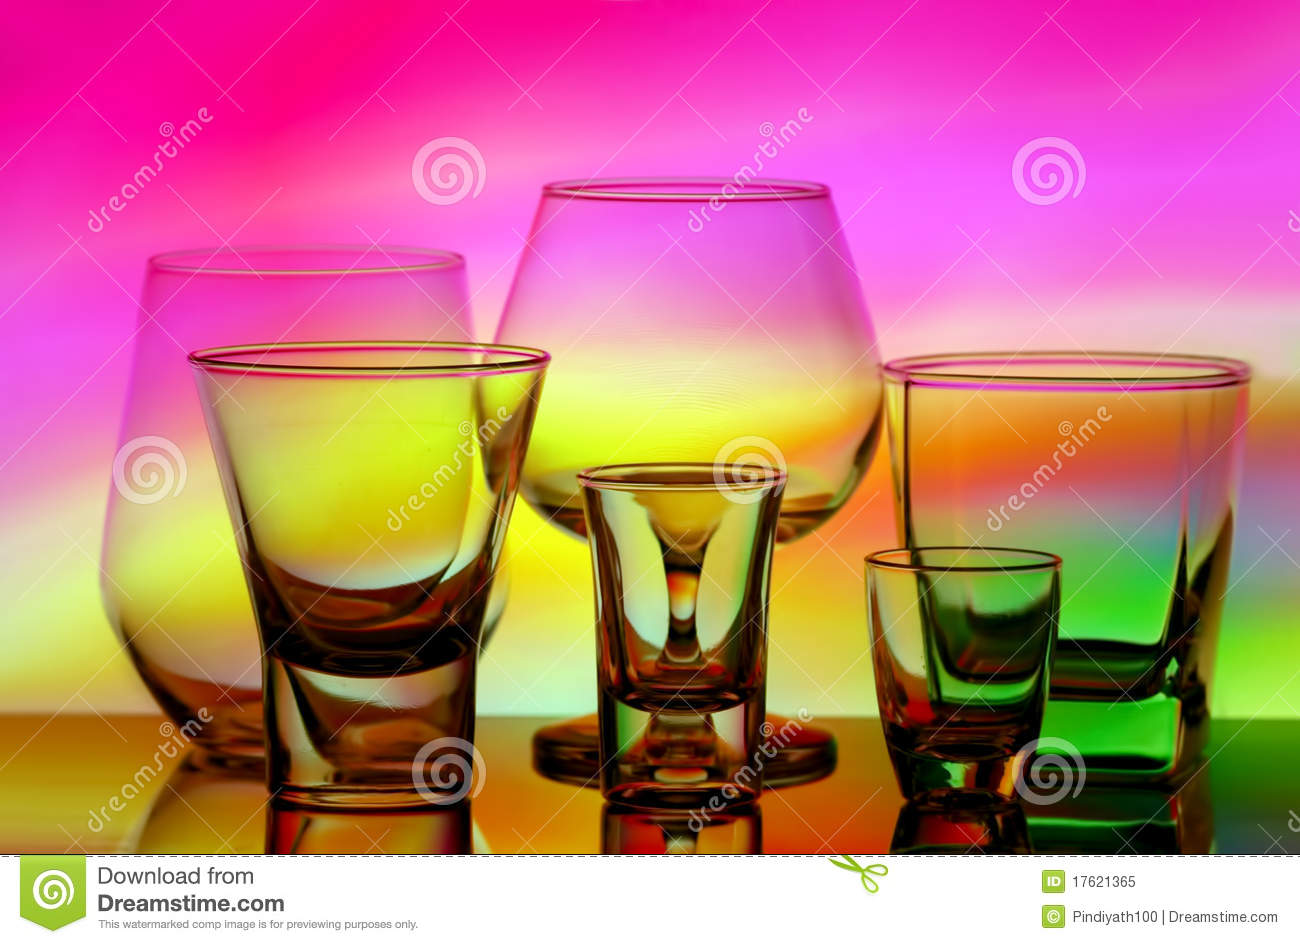 Assorted Glassware Royalty Free Stock Photo Image 17621365